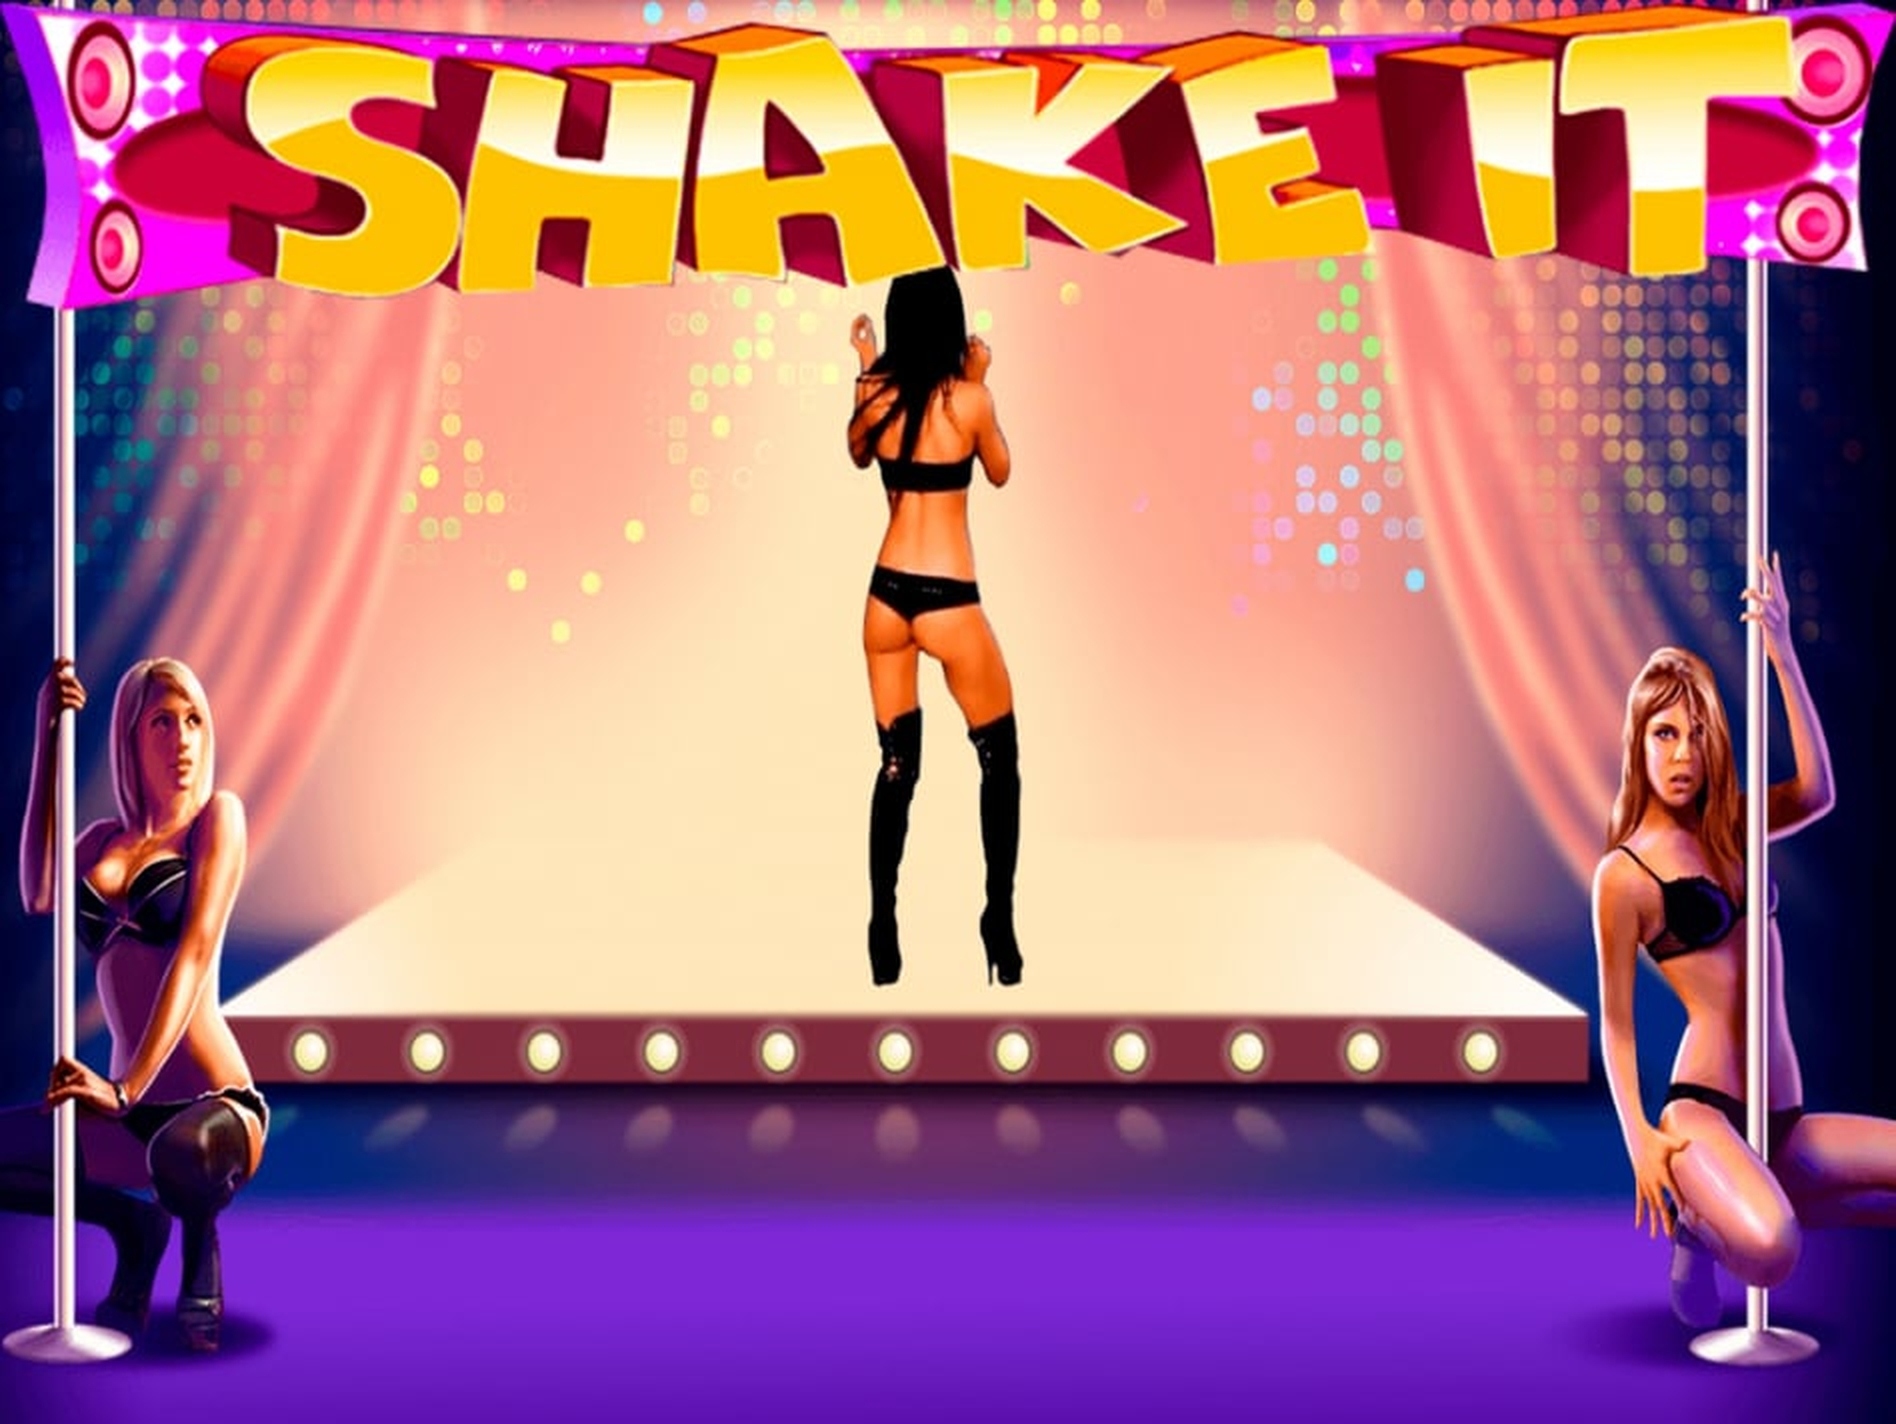 The Shake It Online Slot Demo Game by Fugaso